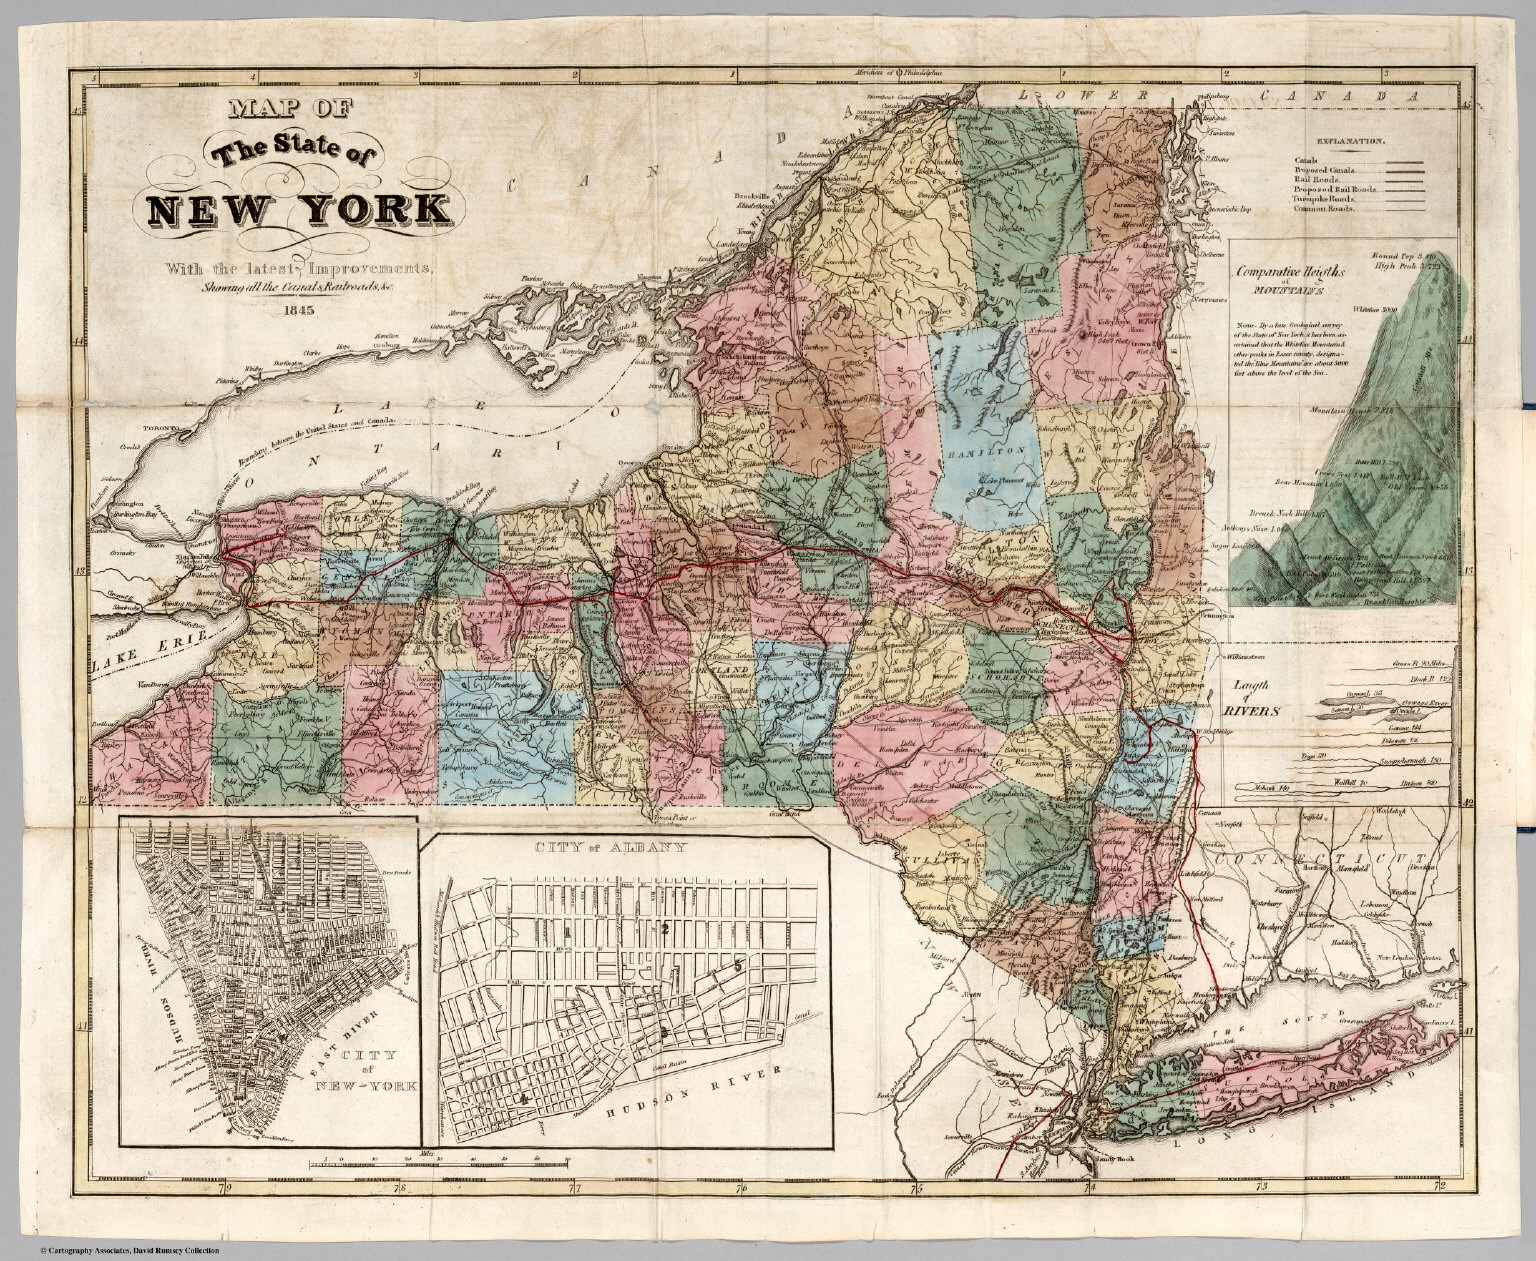 Map Of New York State And Canada.Map Of The State Of New York With The Latest Improvements David